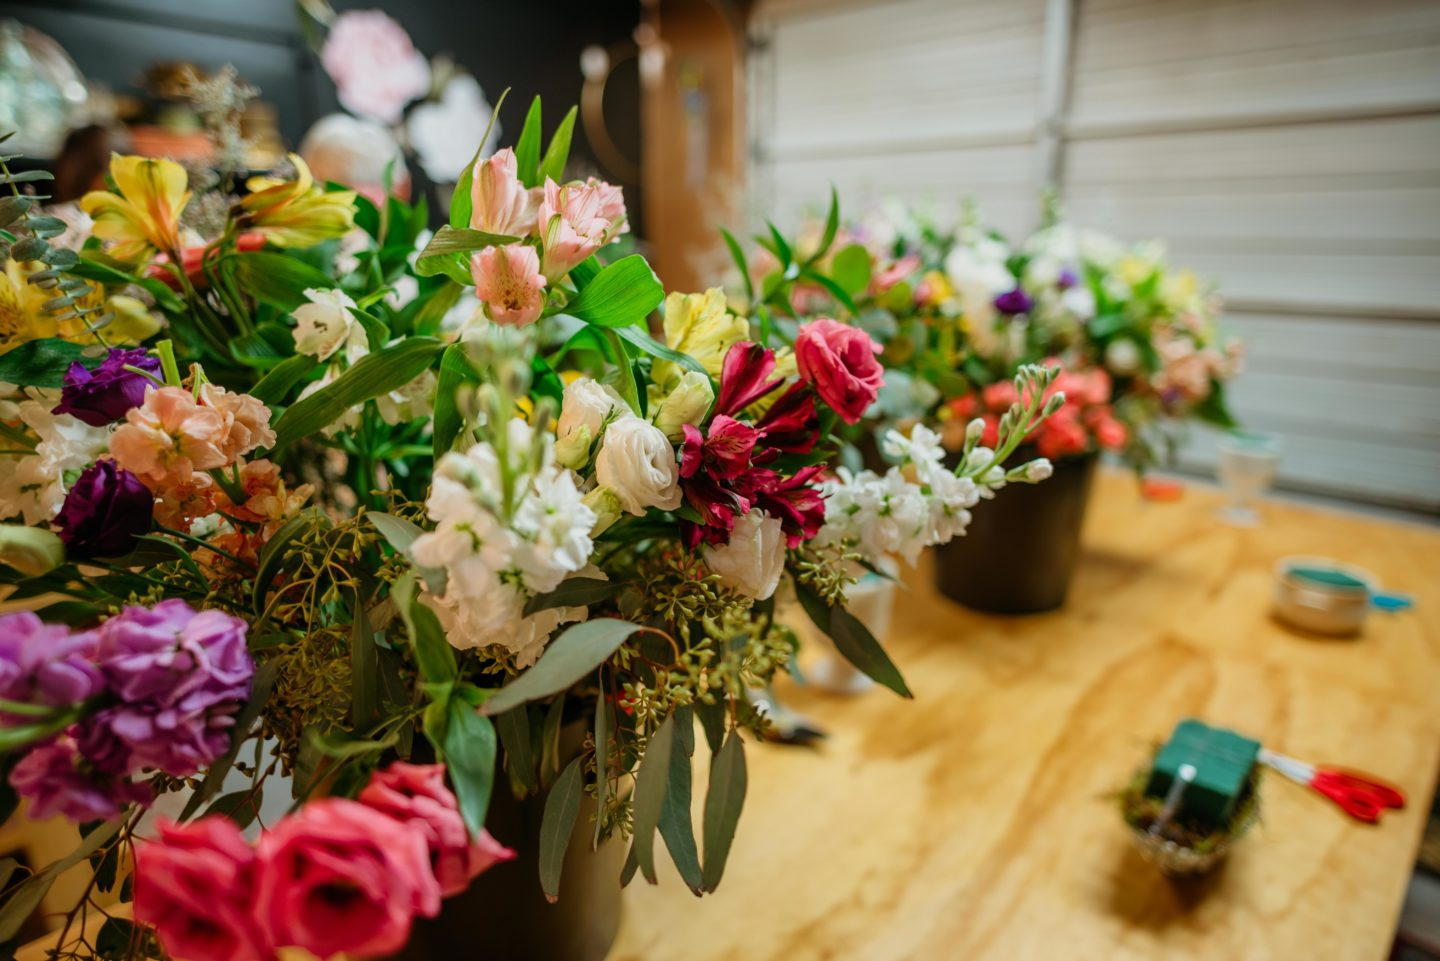 flowers and blooms on a table